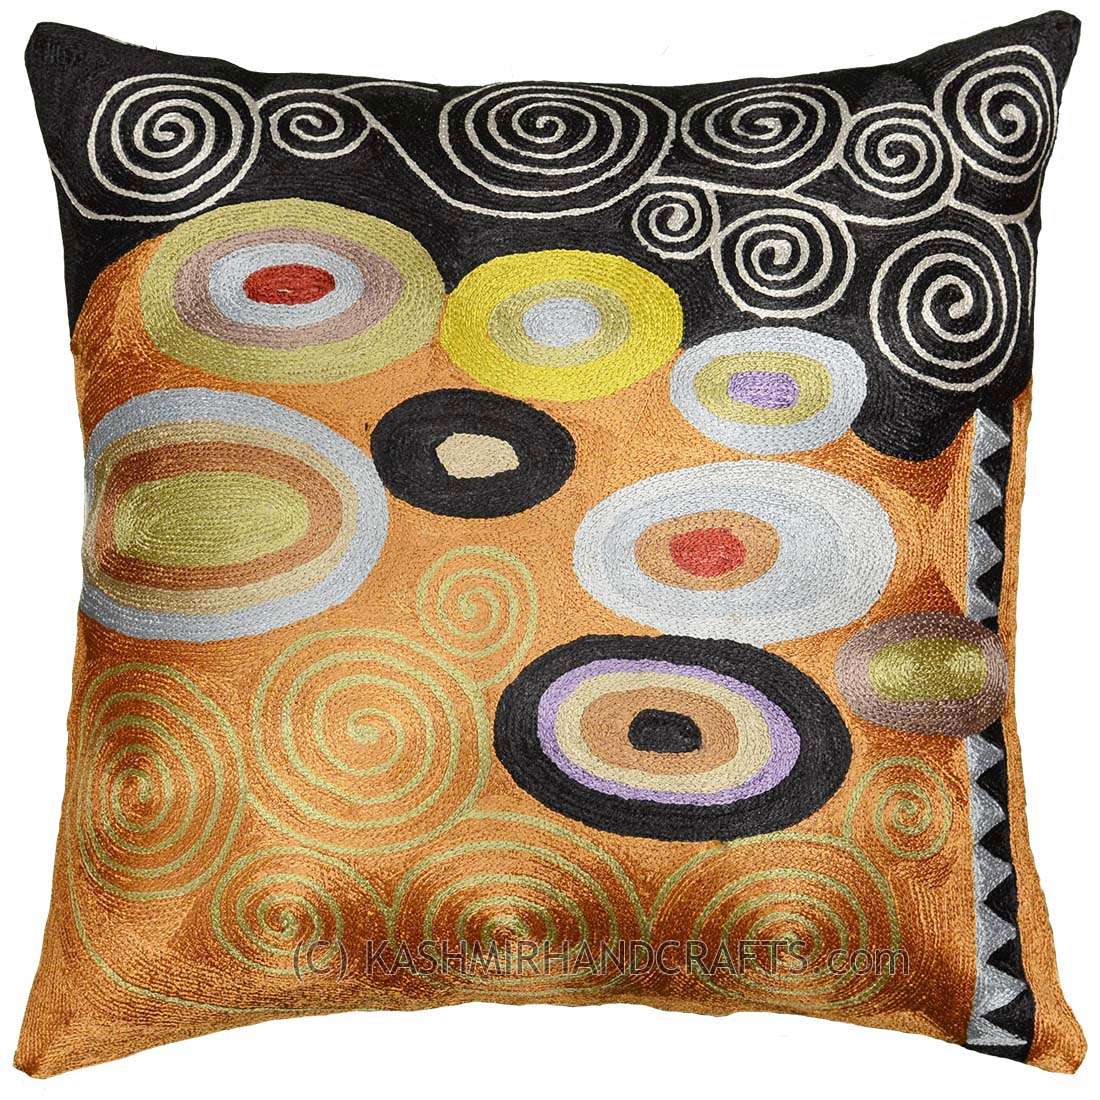 Decorative Pillows for Sofa | Decorative Pillow Covers | Decorative Pillows for Bed